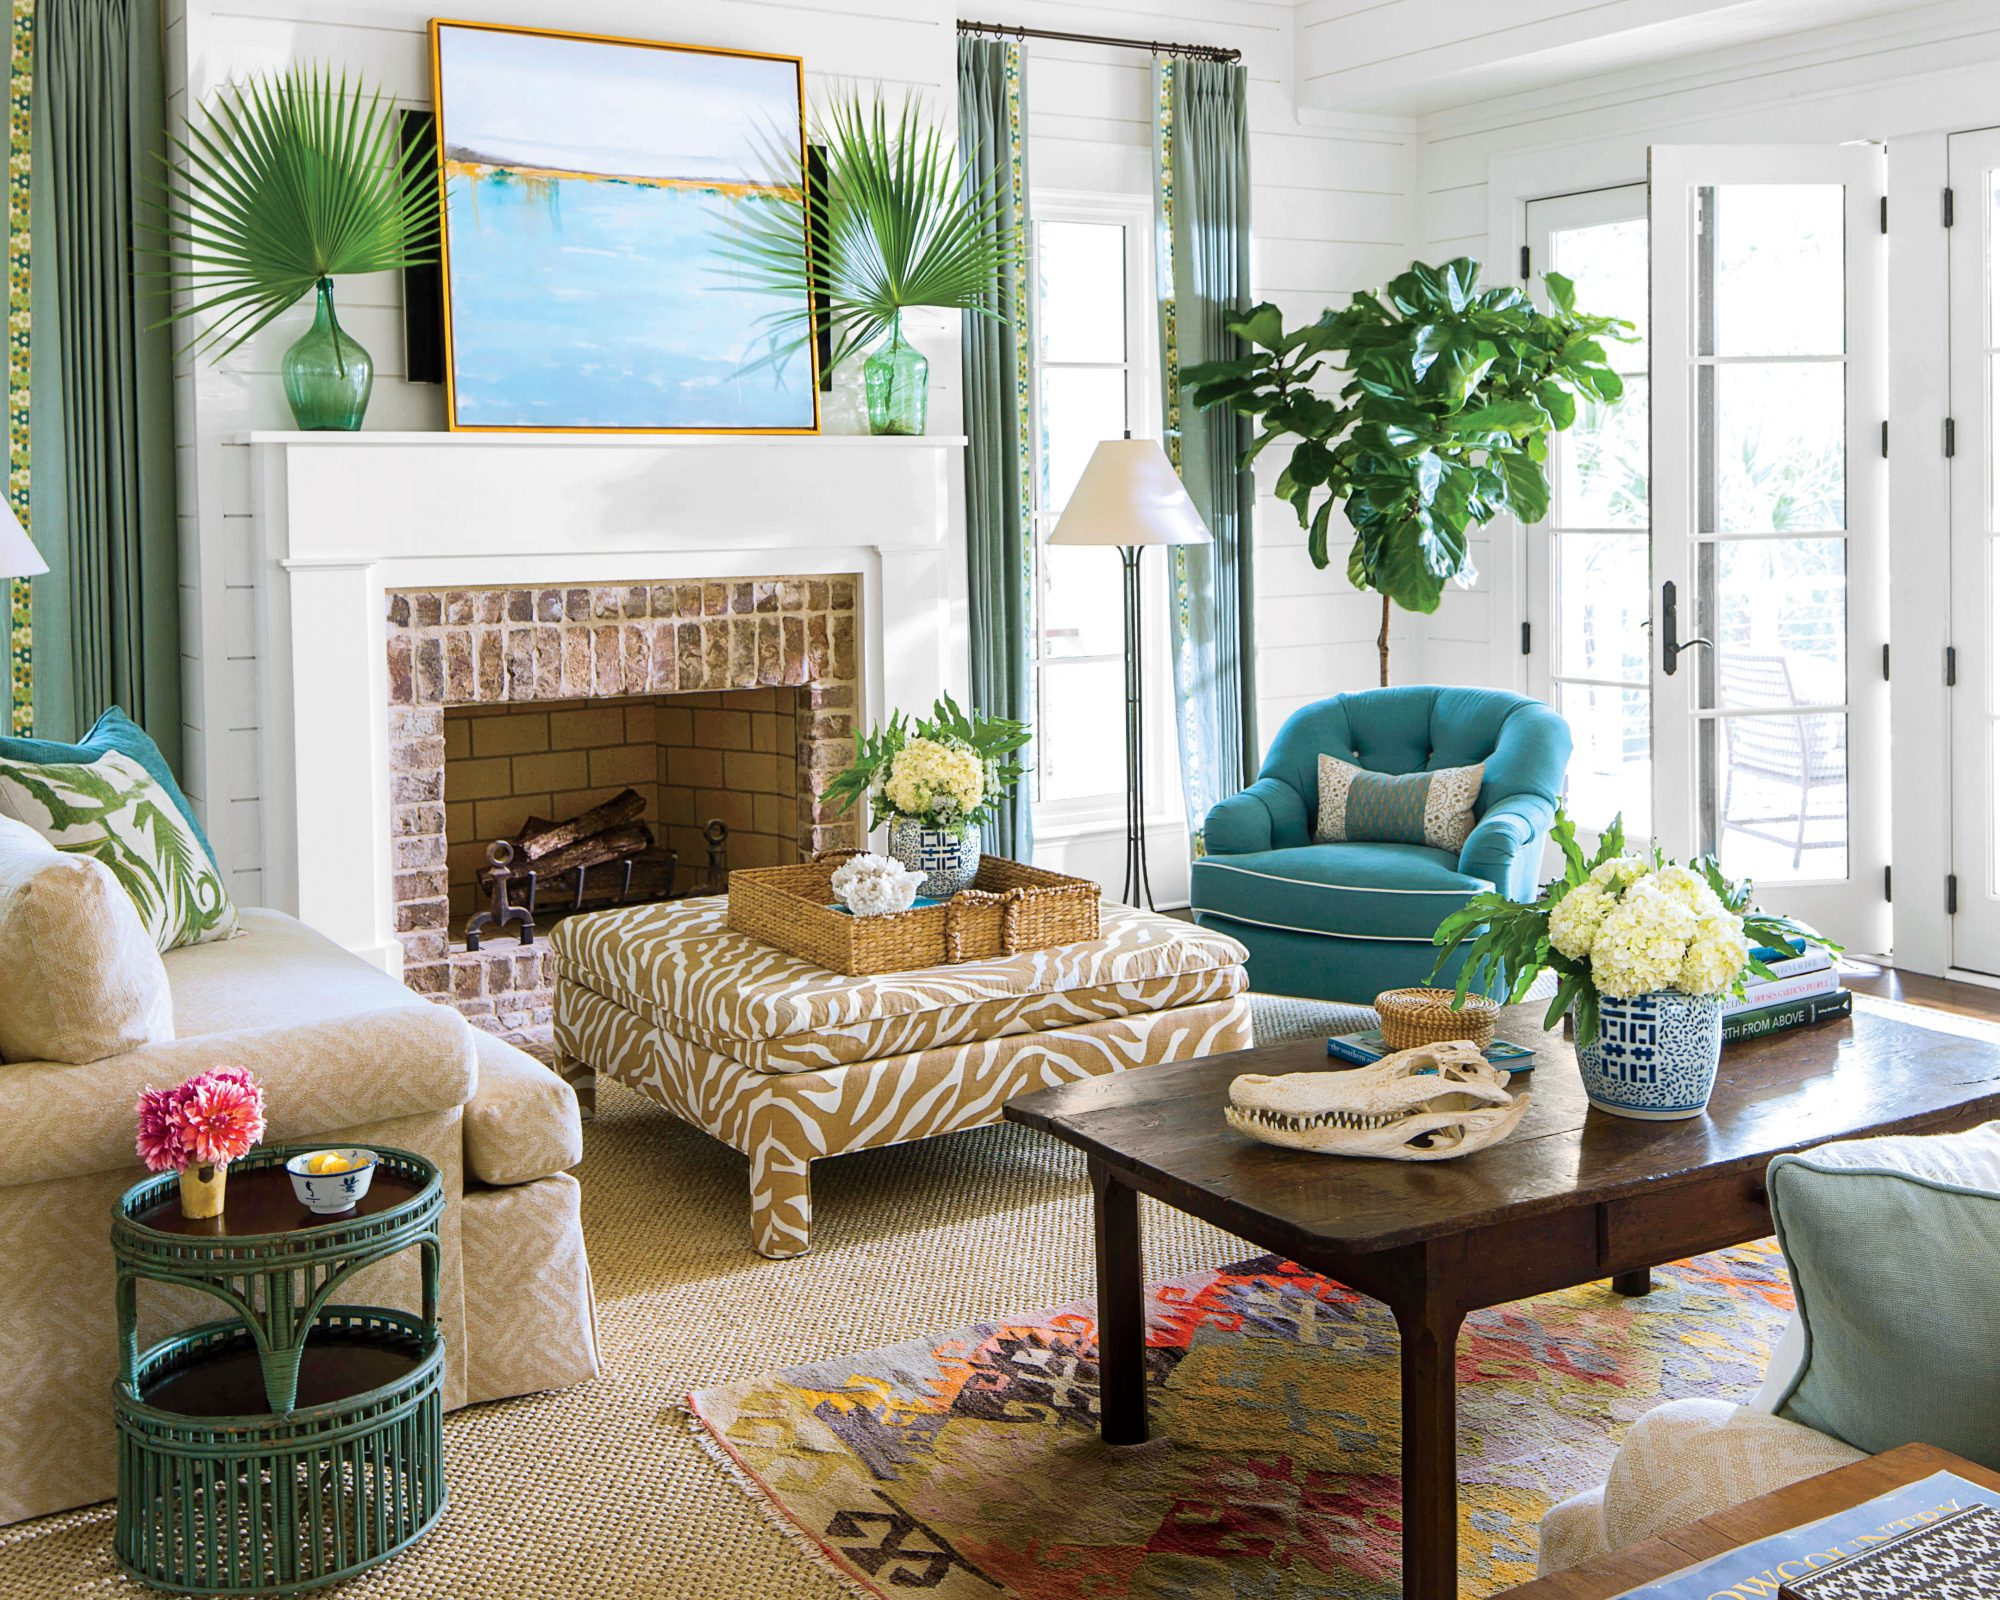 Living Room Decoration Endearing 106 Living Room Decorating Ideas  Southern Living Design Inspiration